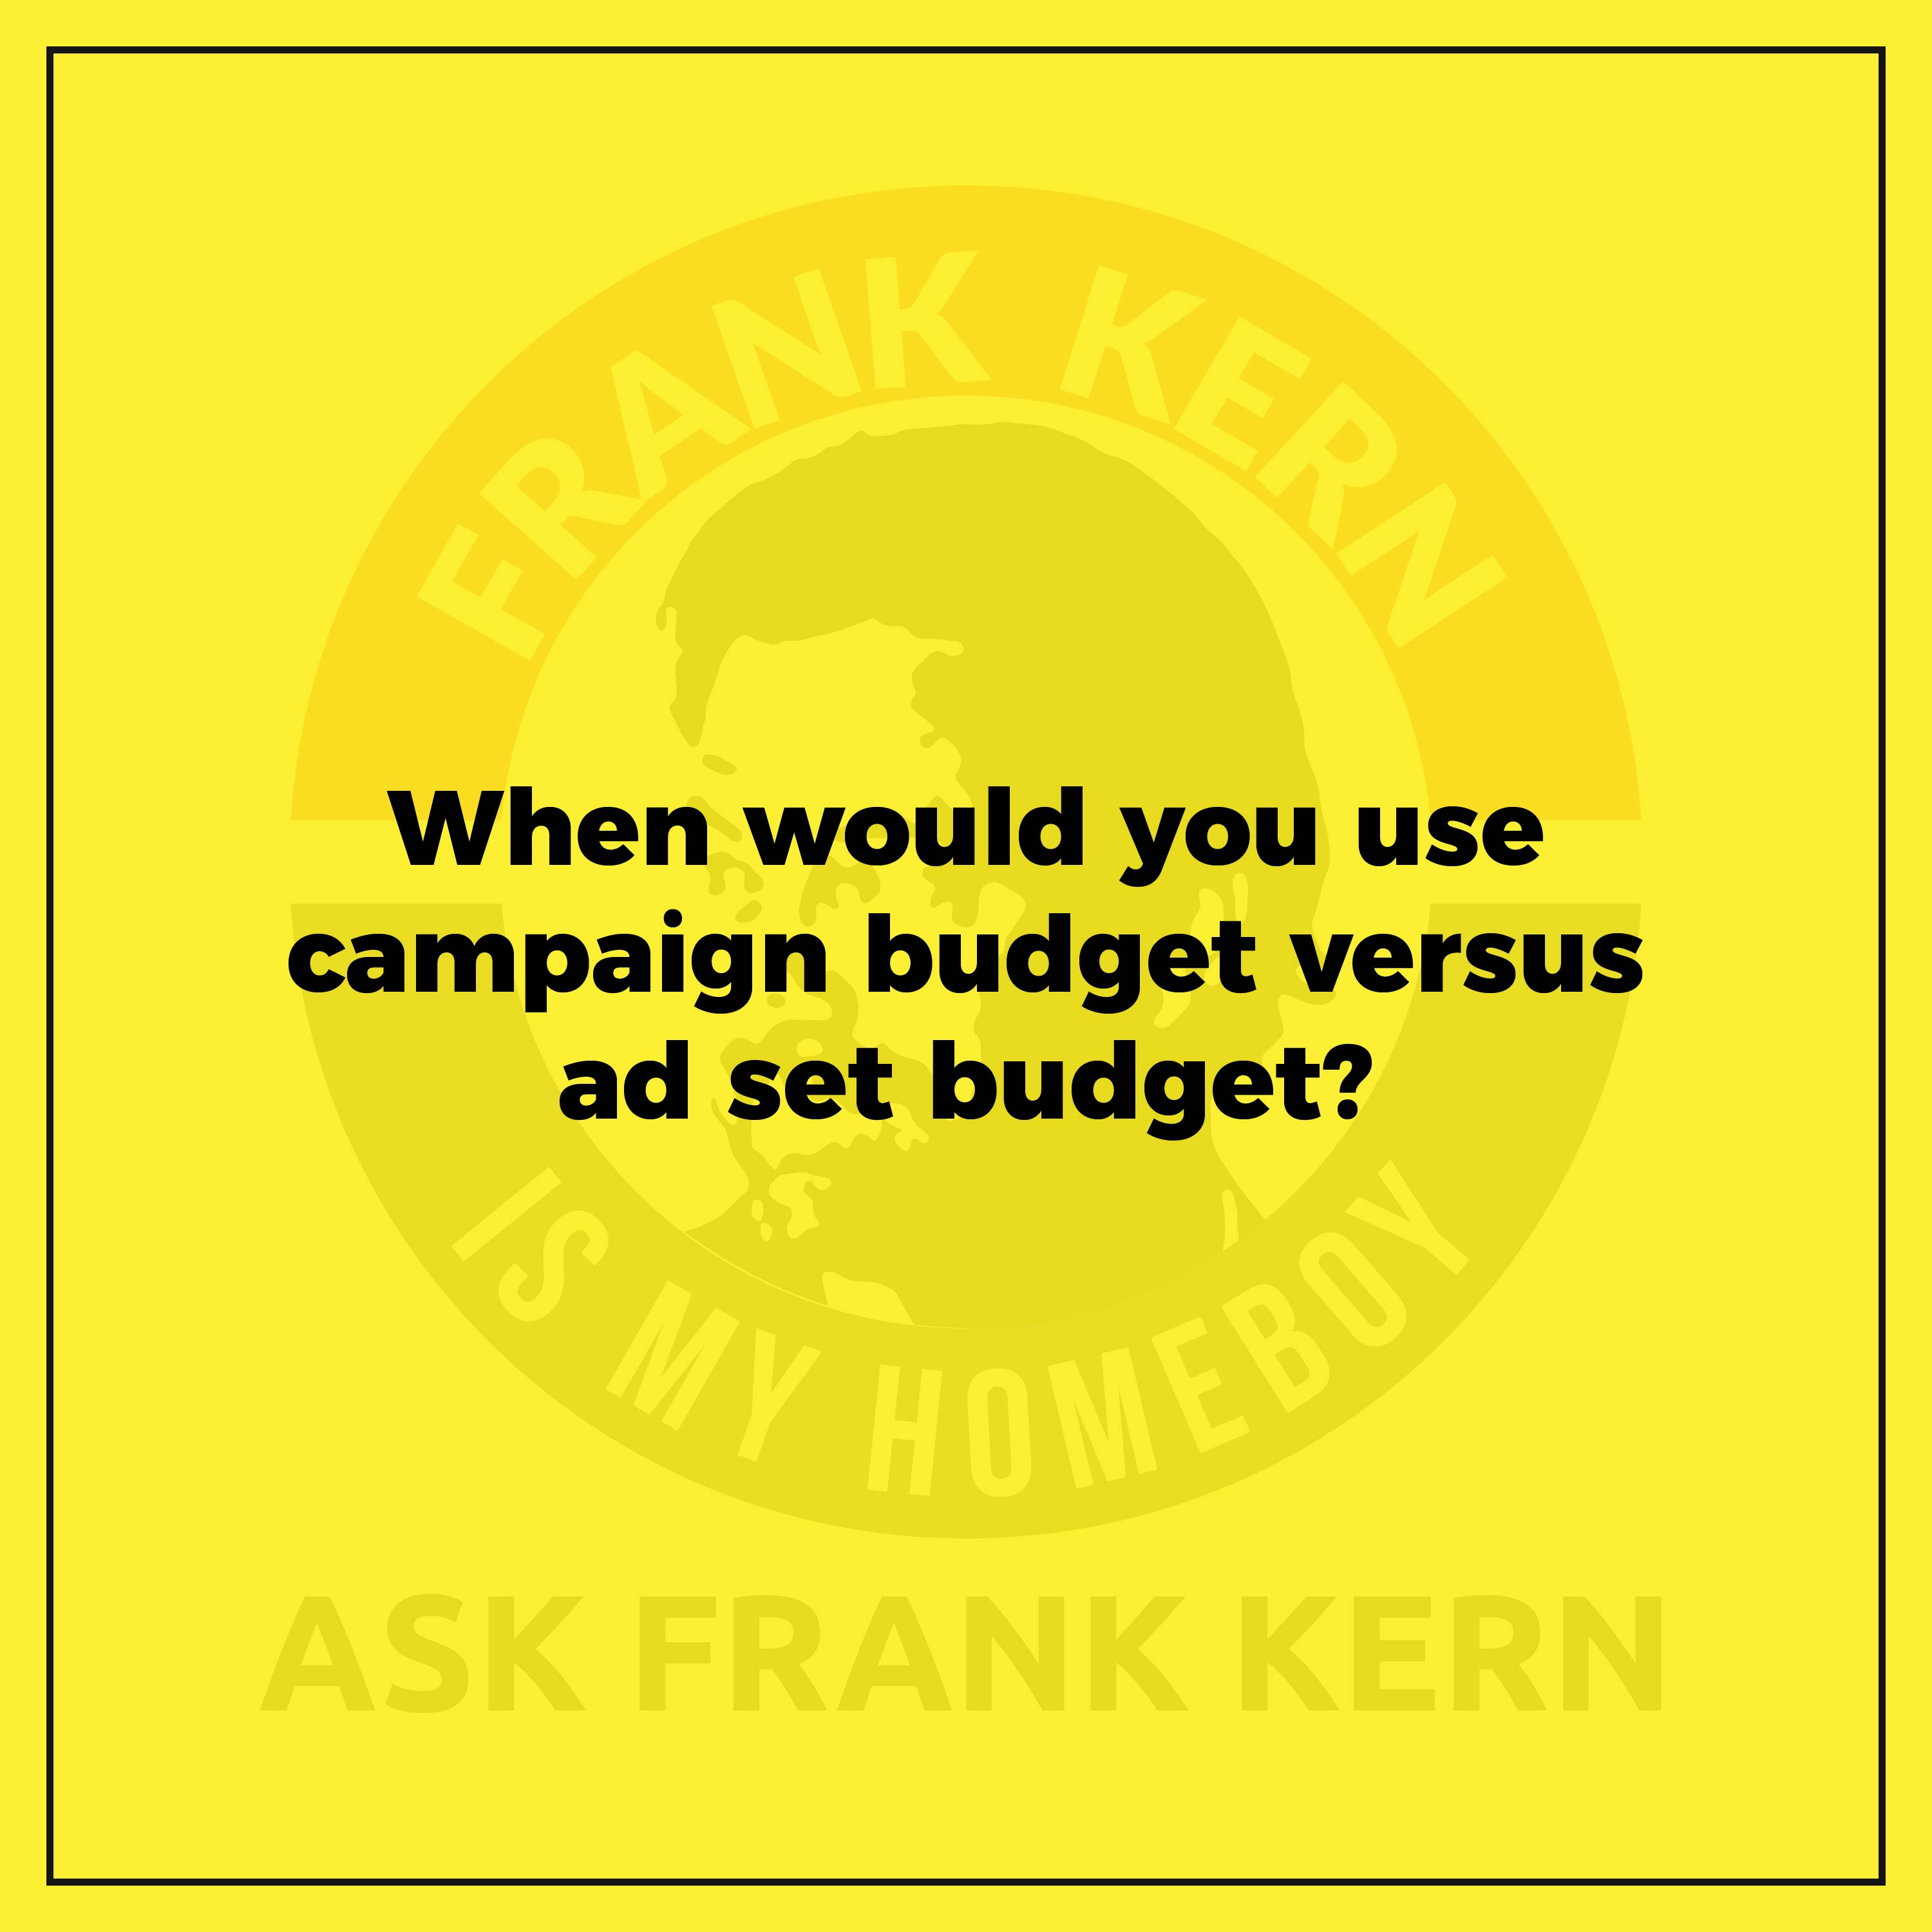 When would you use campaign budget versus ad set budget?